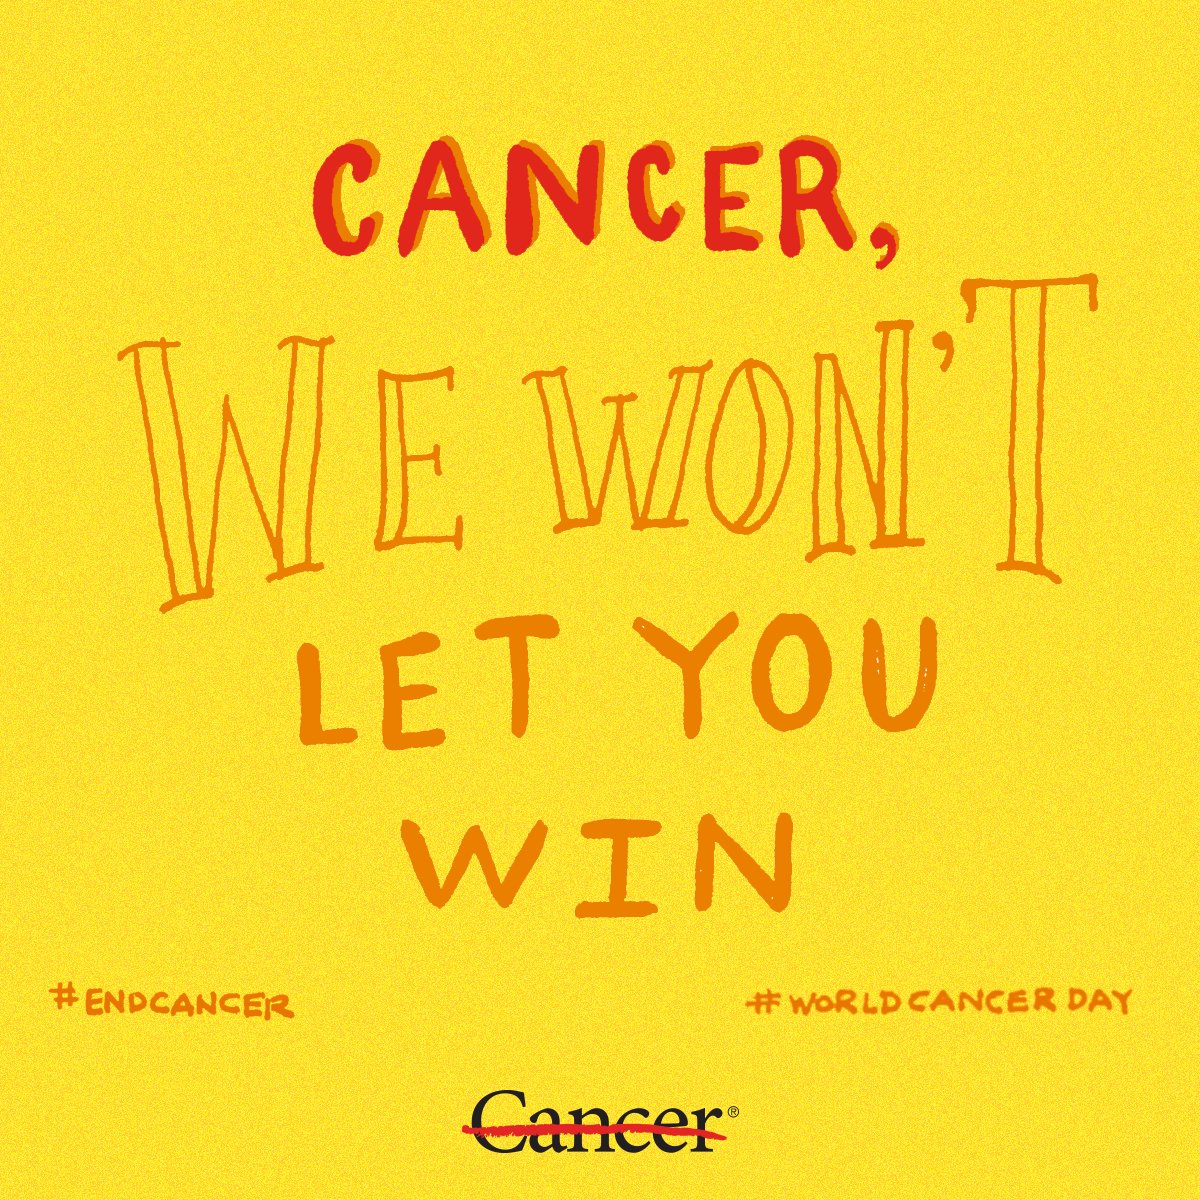 We are stronger together. This #WorldCancerDay, show your resolve to #endcancer by RTing this graphic. https://t.co/9Ab91EgZAe